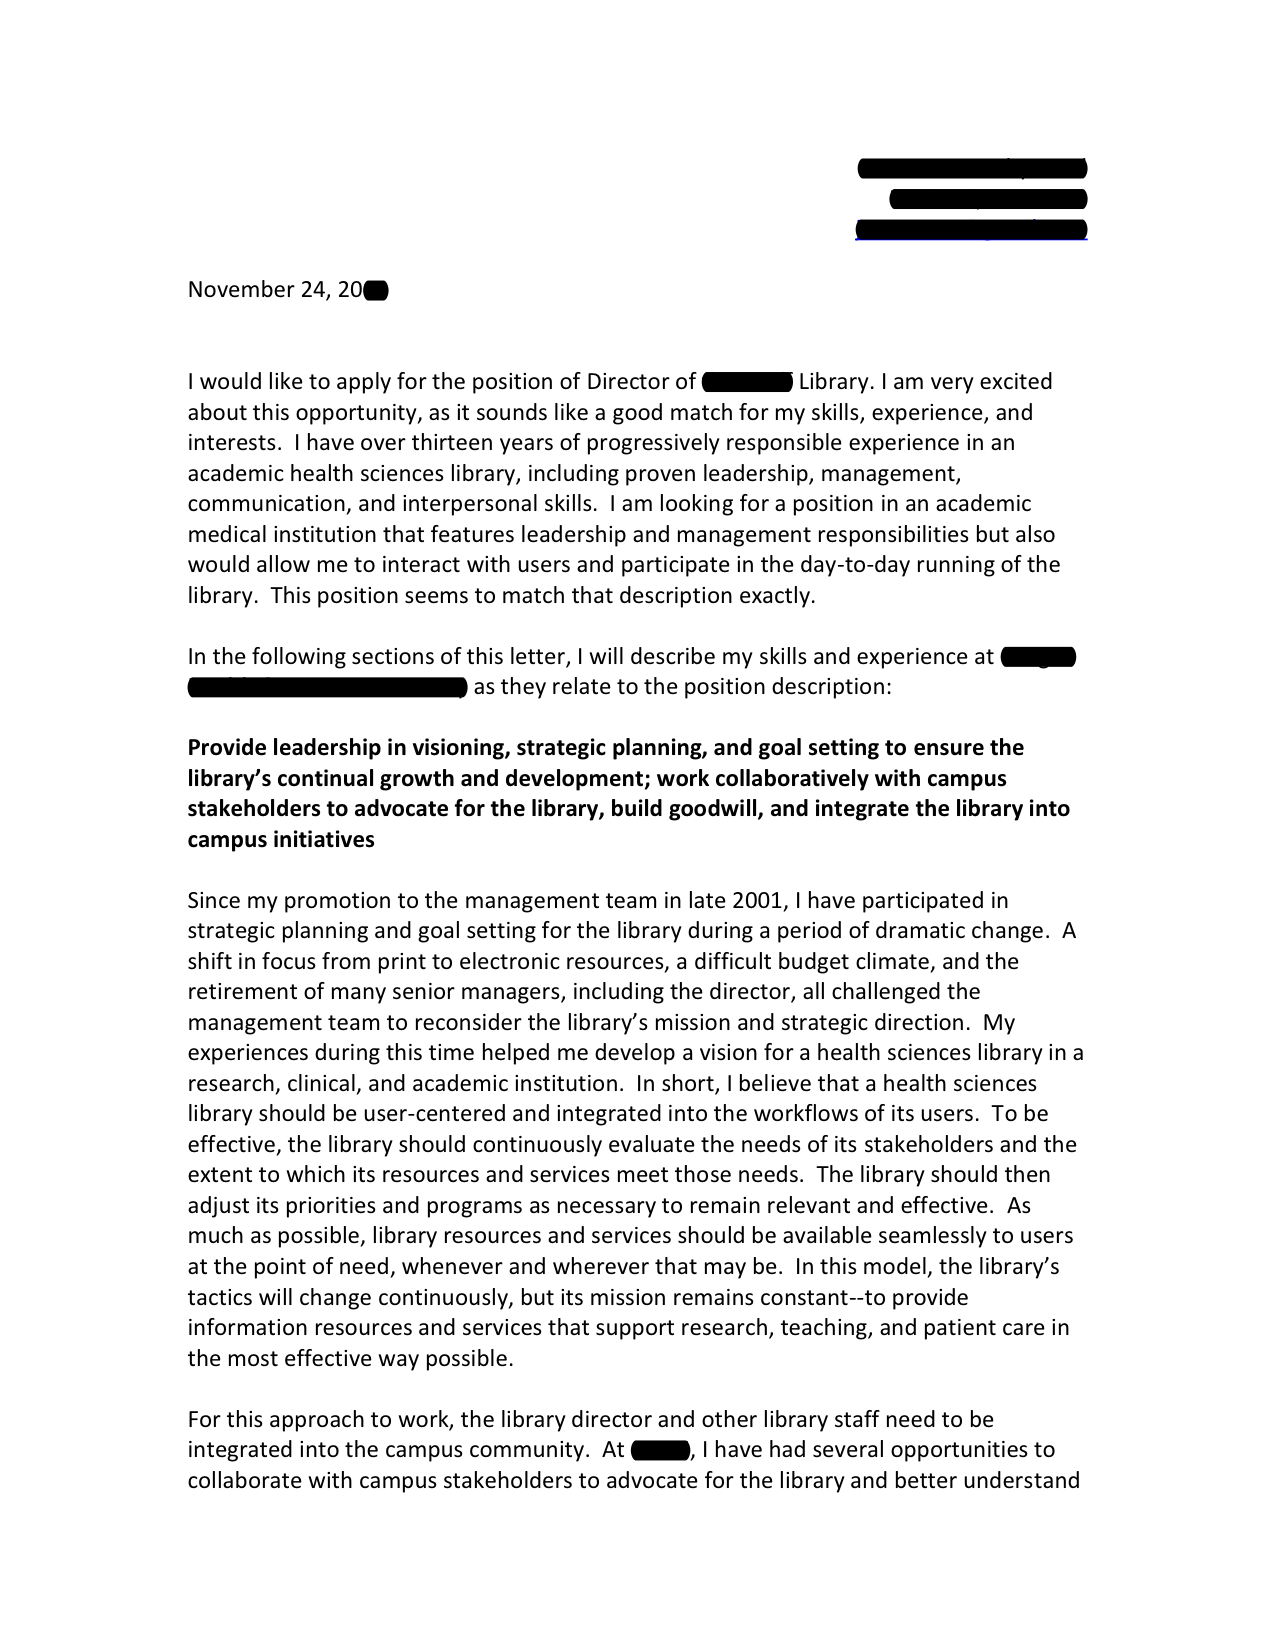 Biomedical Research Library Director cover letter | Open Cover Letters